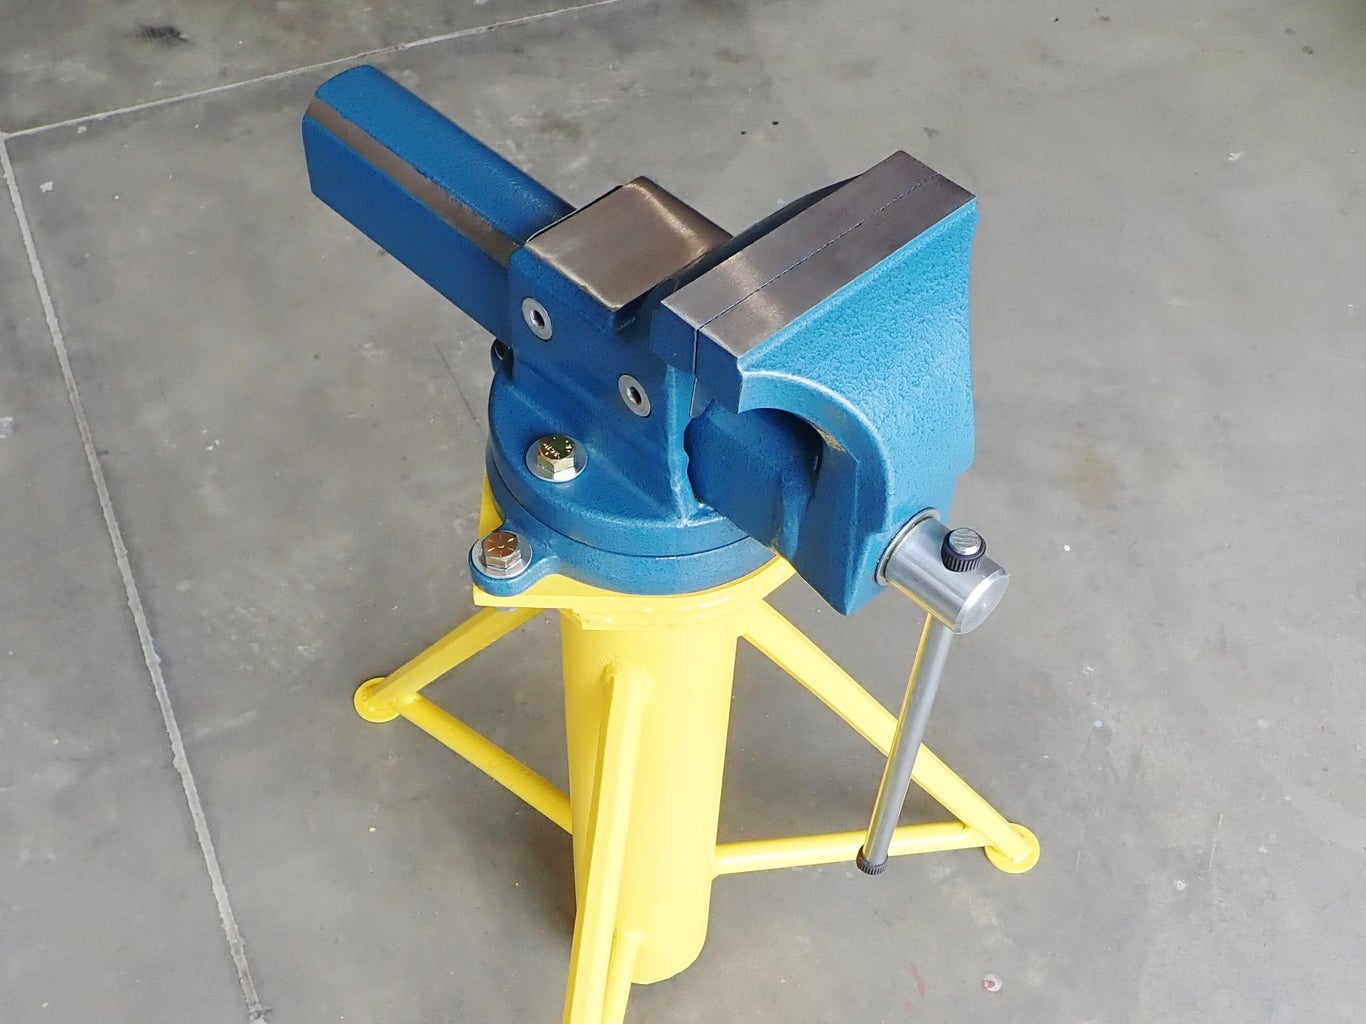 Mount the Vise